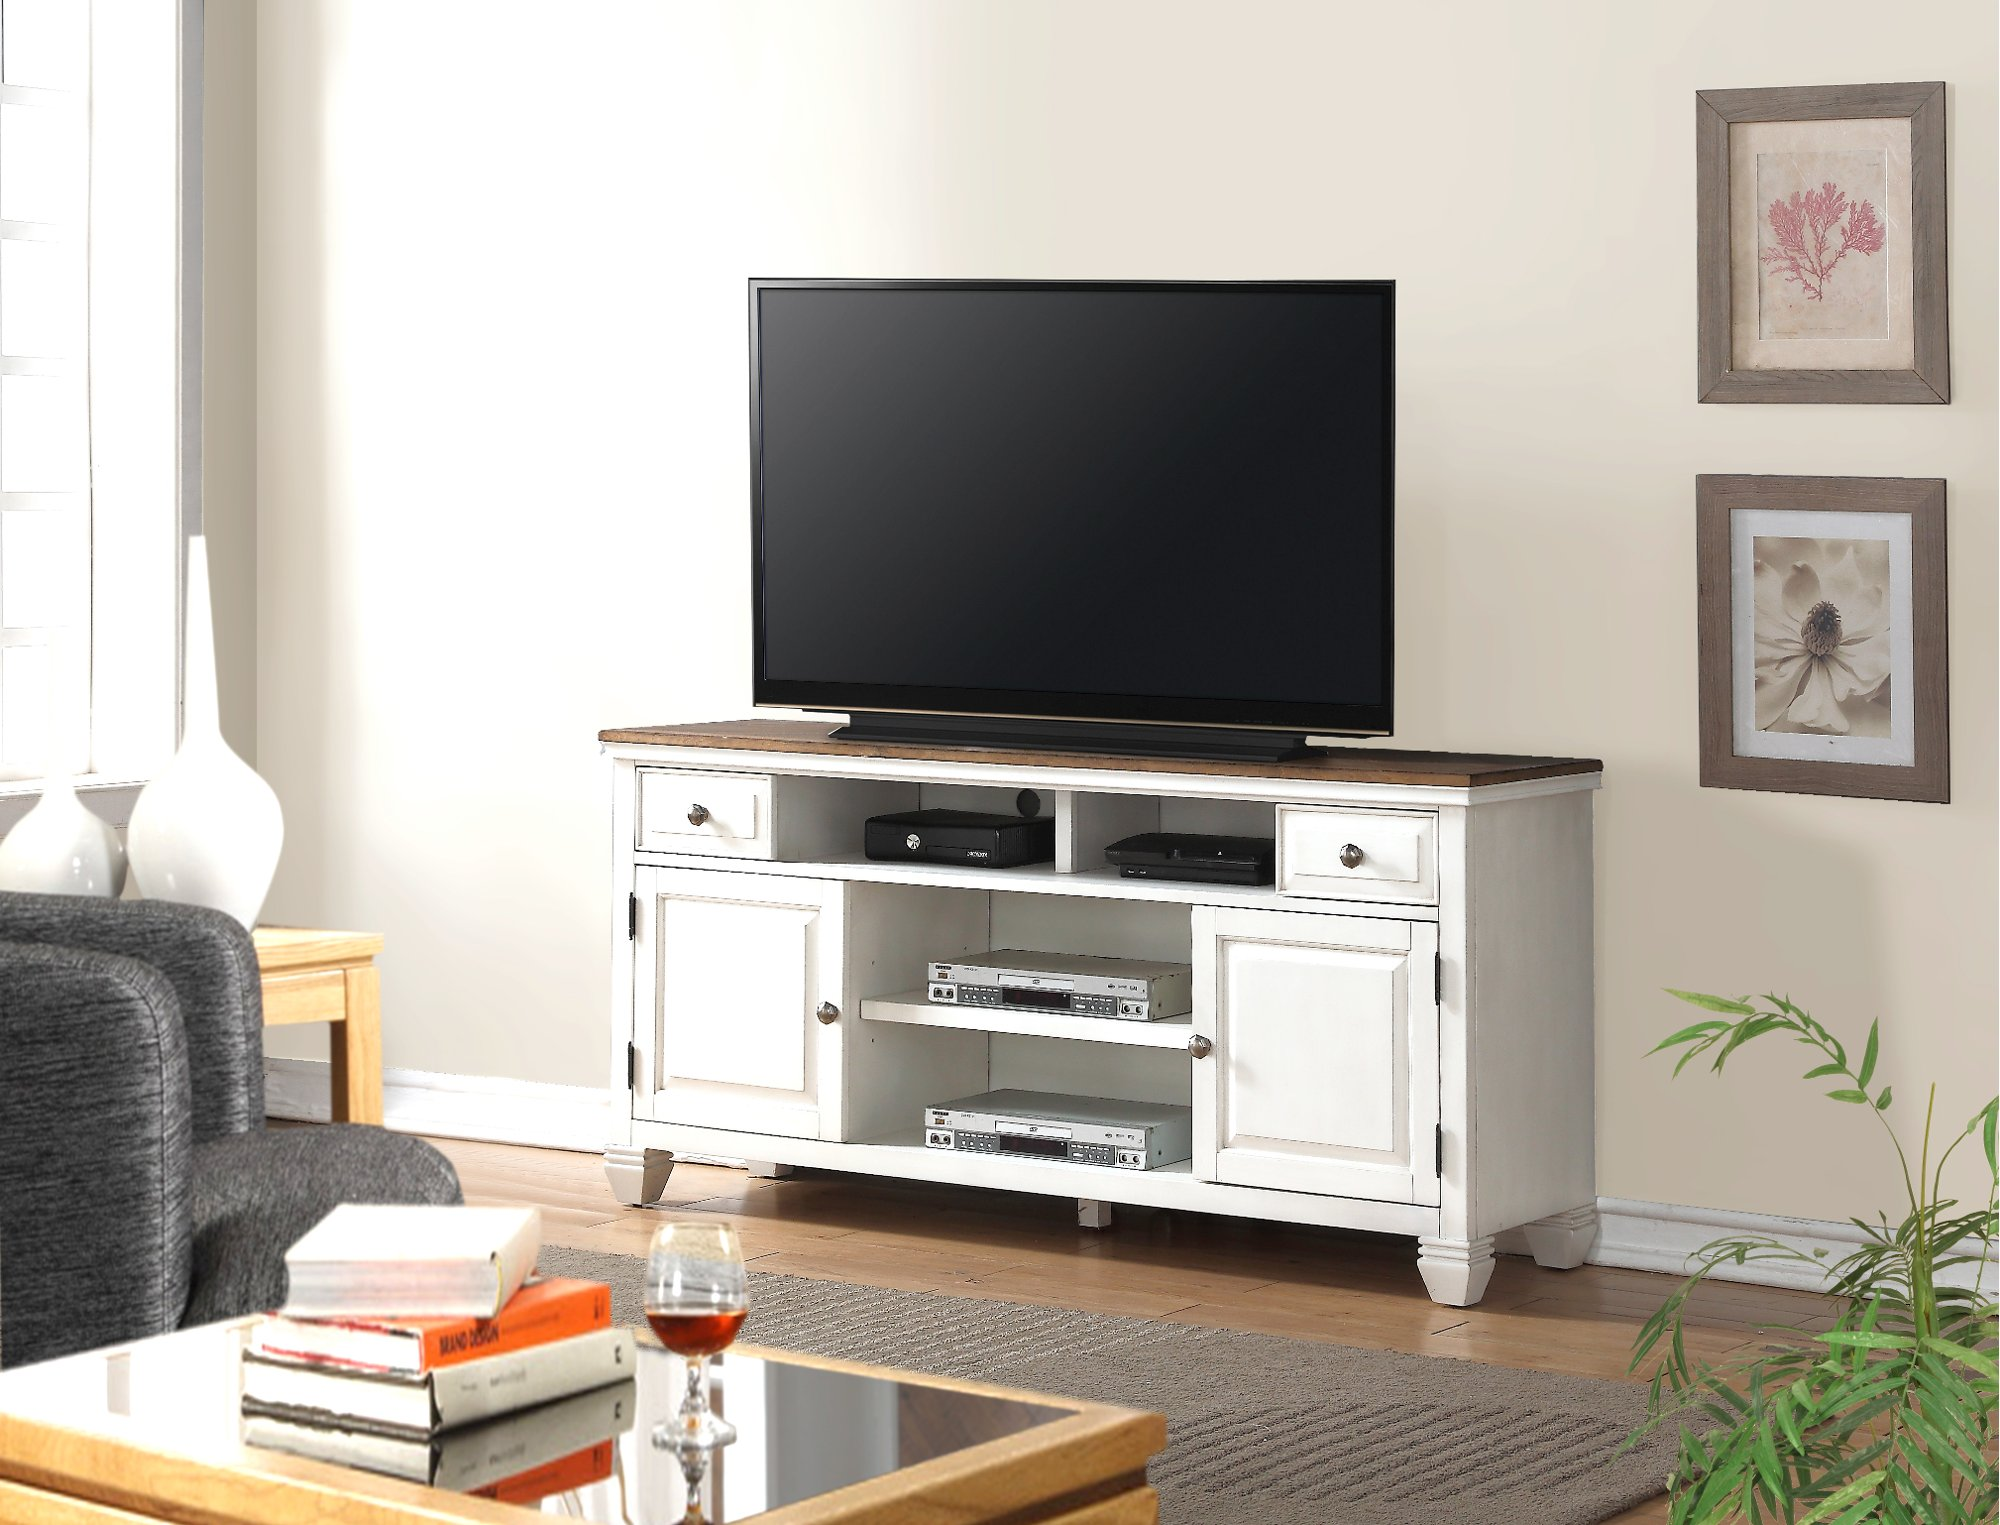 media cabinets harbor item tv stand additional video oak storage stands living centers view levin salt furniture product room cottage